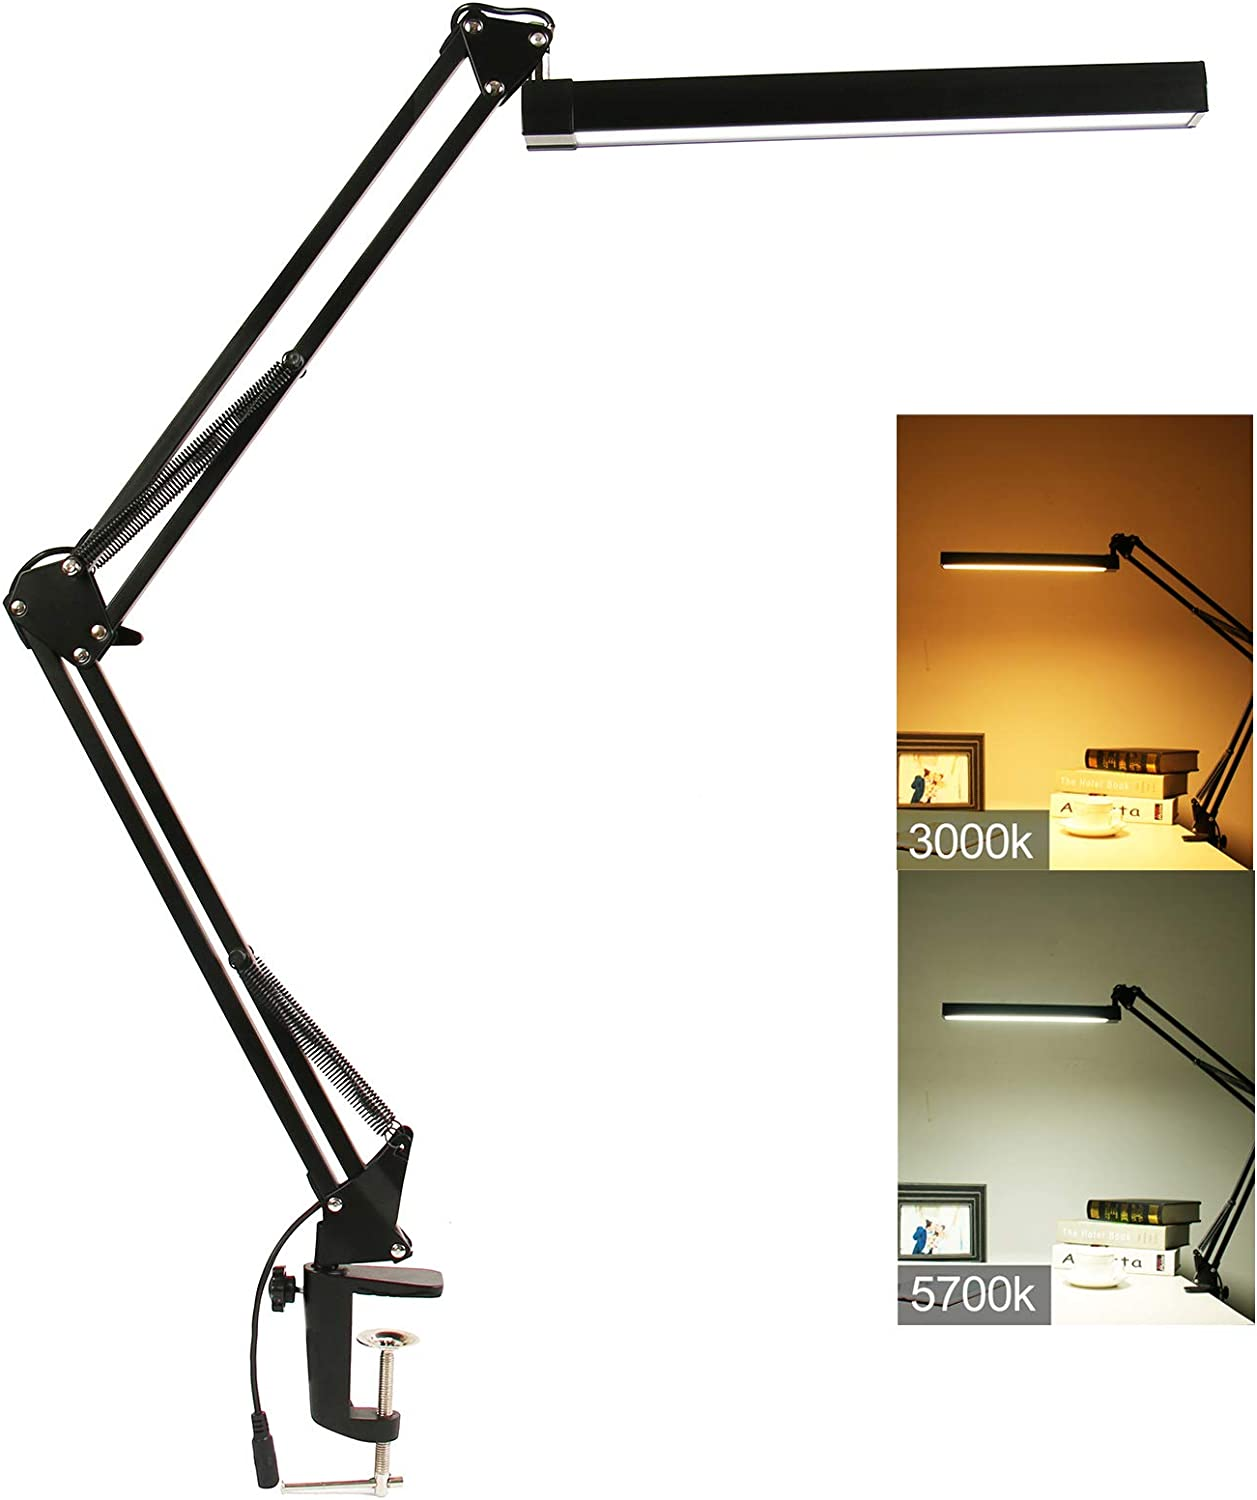 YOUKOYI A16S Metal LED Swing Arm Desk Lamp, Dimmable Architect Drafting Lamp Clamp for Study Reading Office Work, 3 Brightness Levels, 2 Color Modes, Touch Control